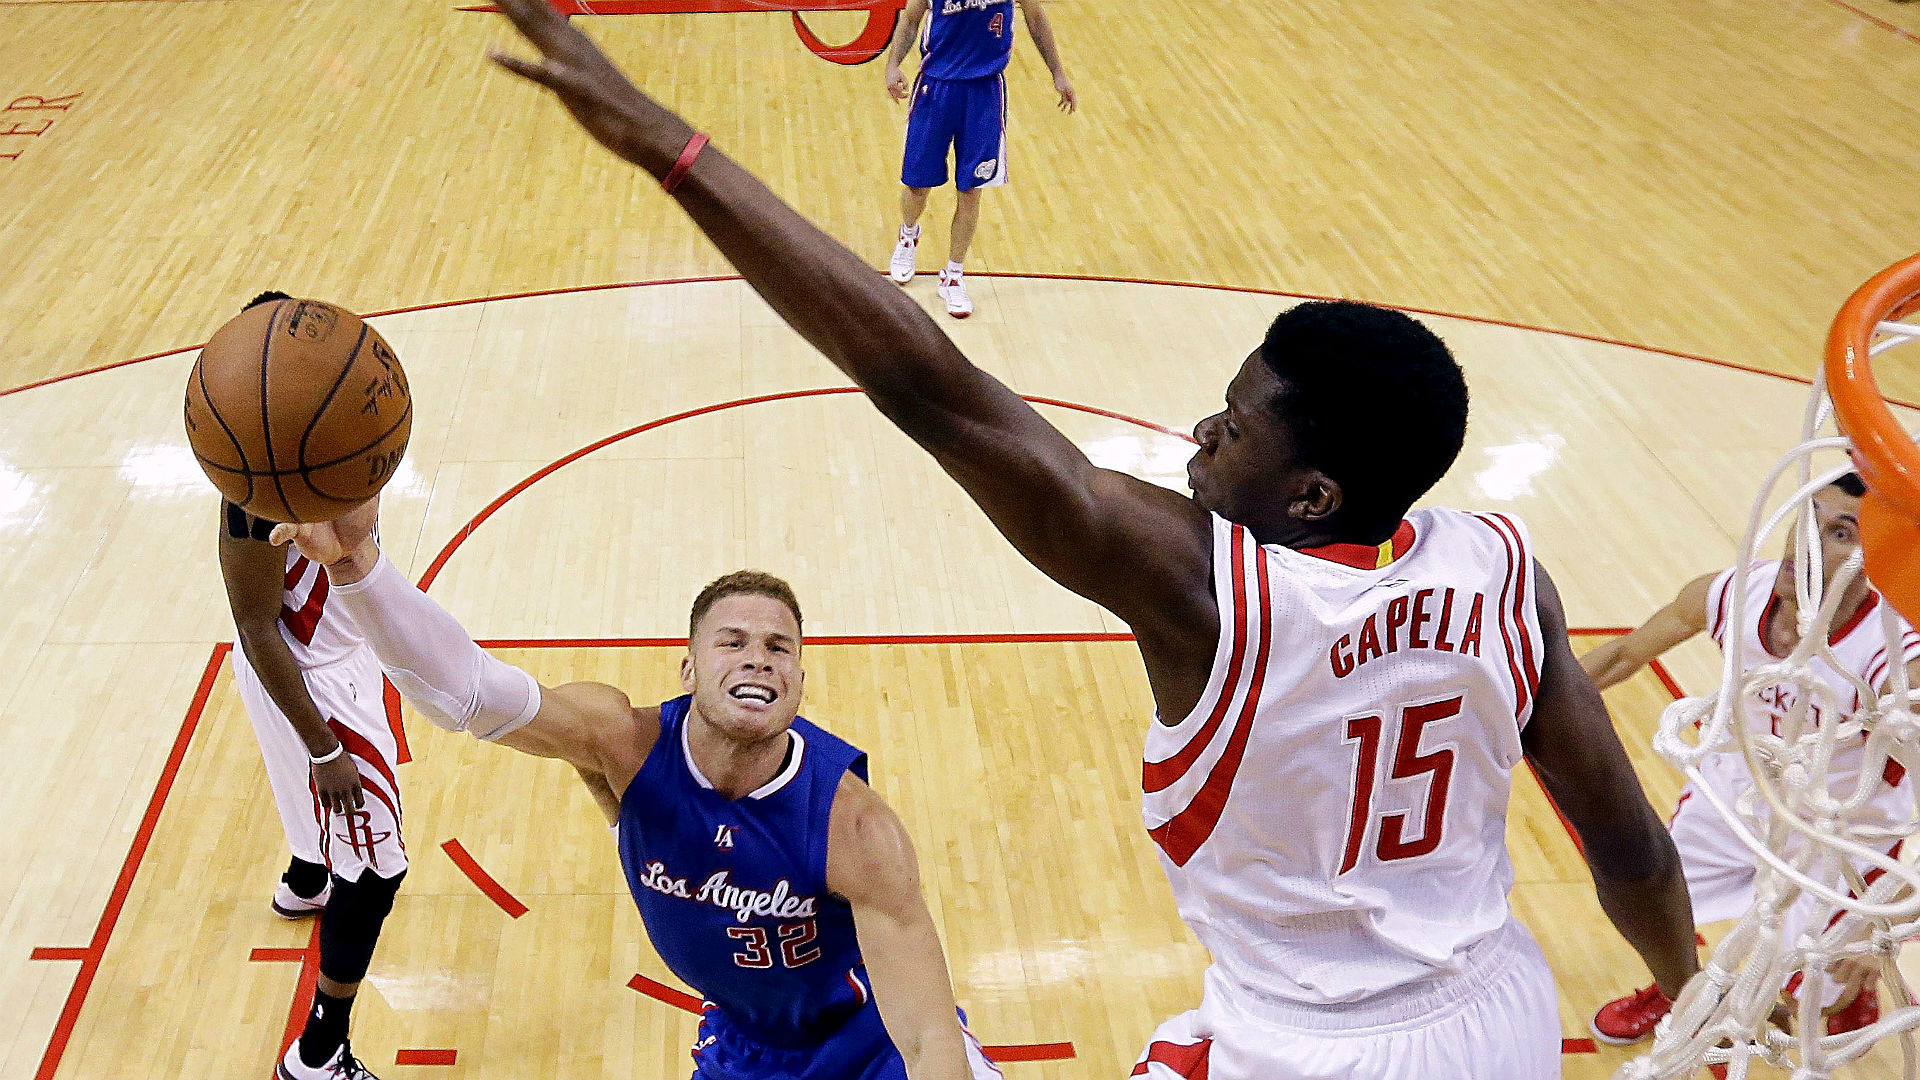 NBA pick of the day - Clippers vs. Rockets Game 2